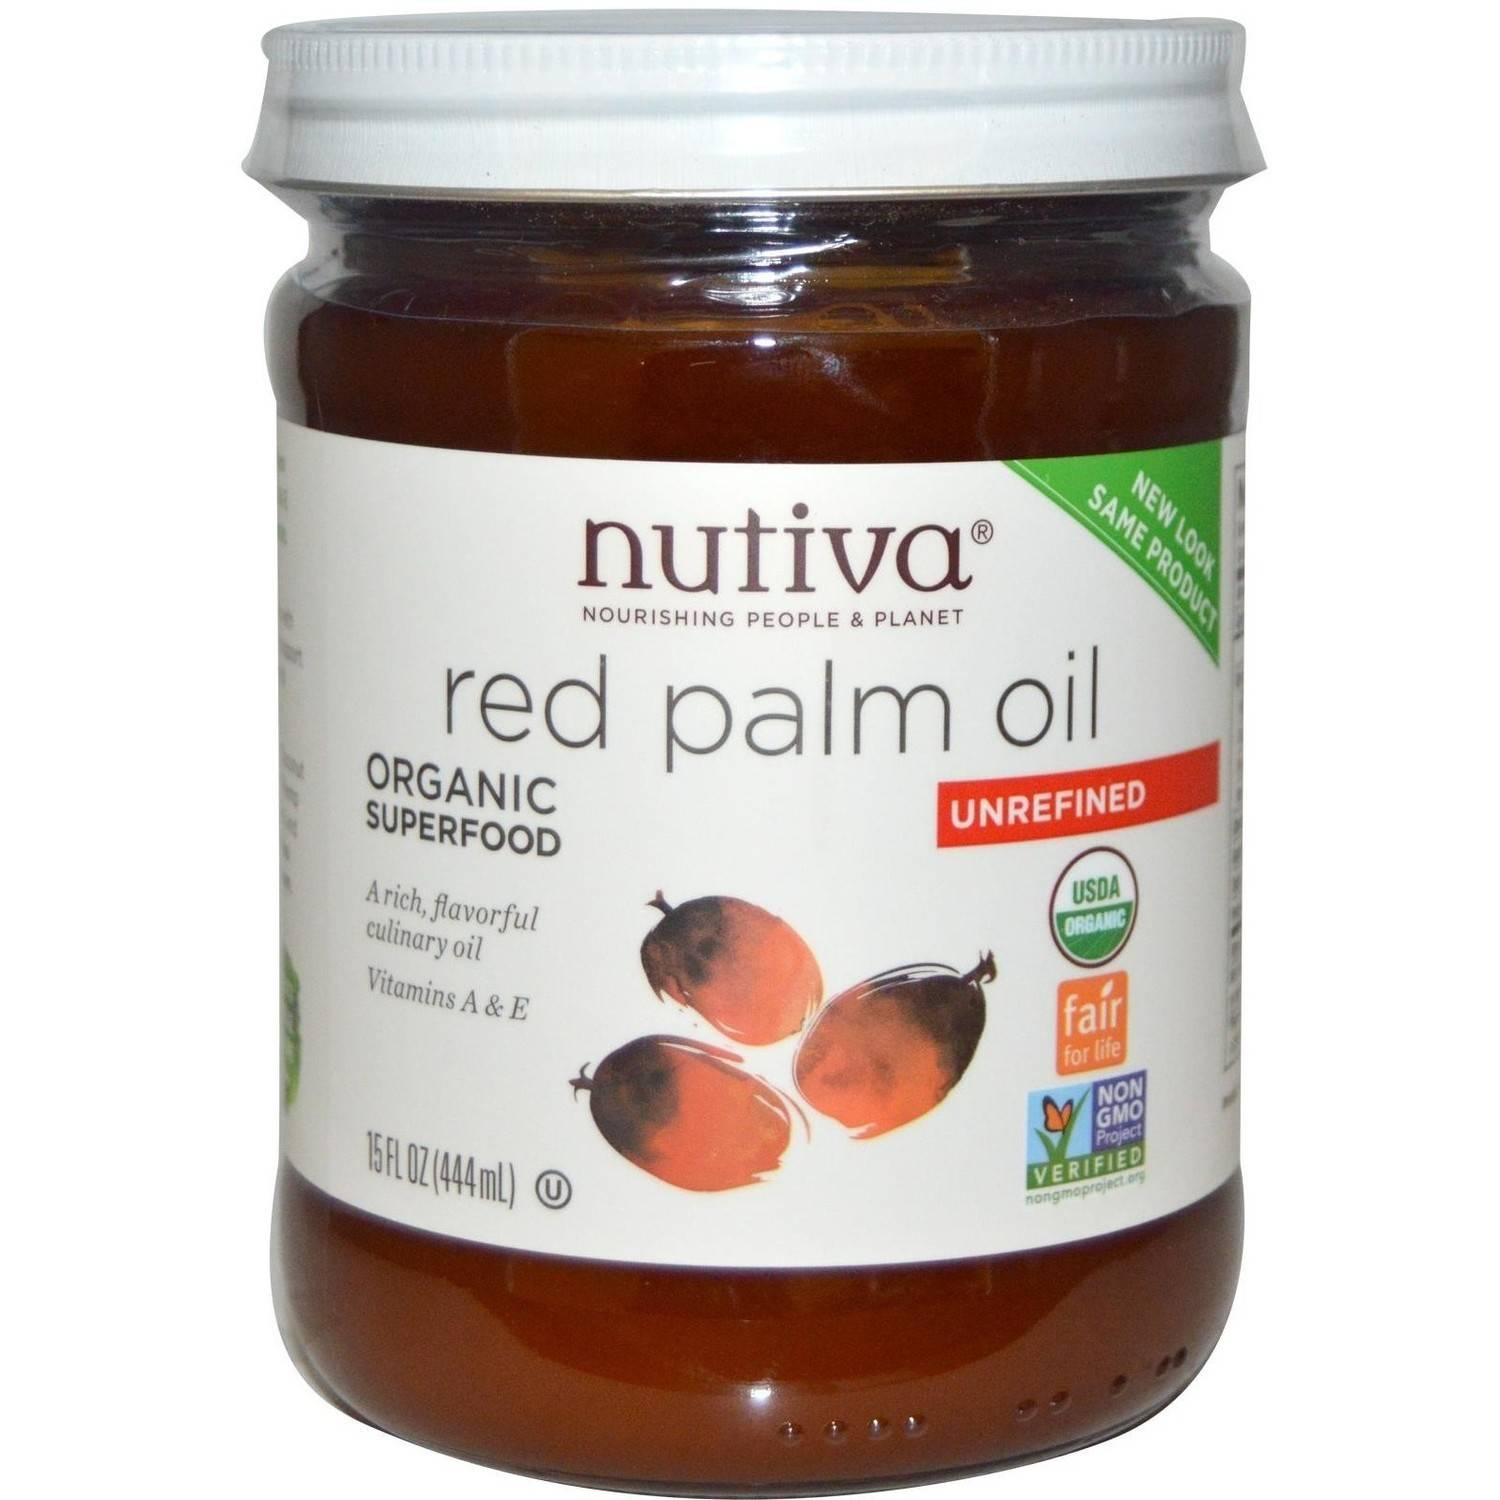 Nutiva Organic Red Palm Oil, 15 fl oz, (Pack of 3)